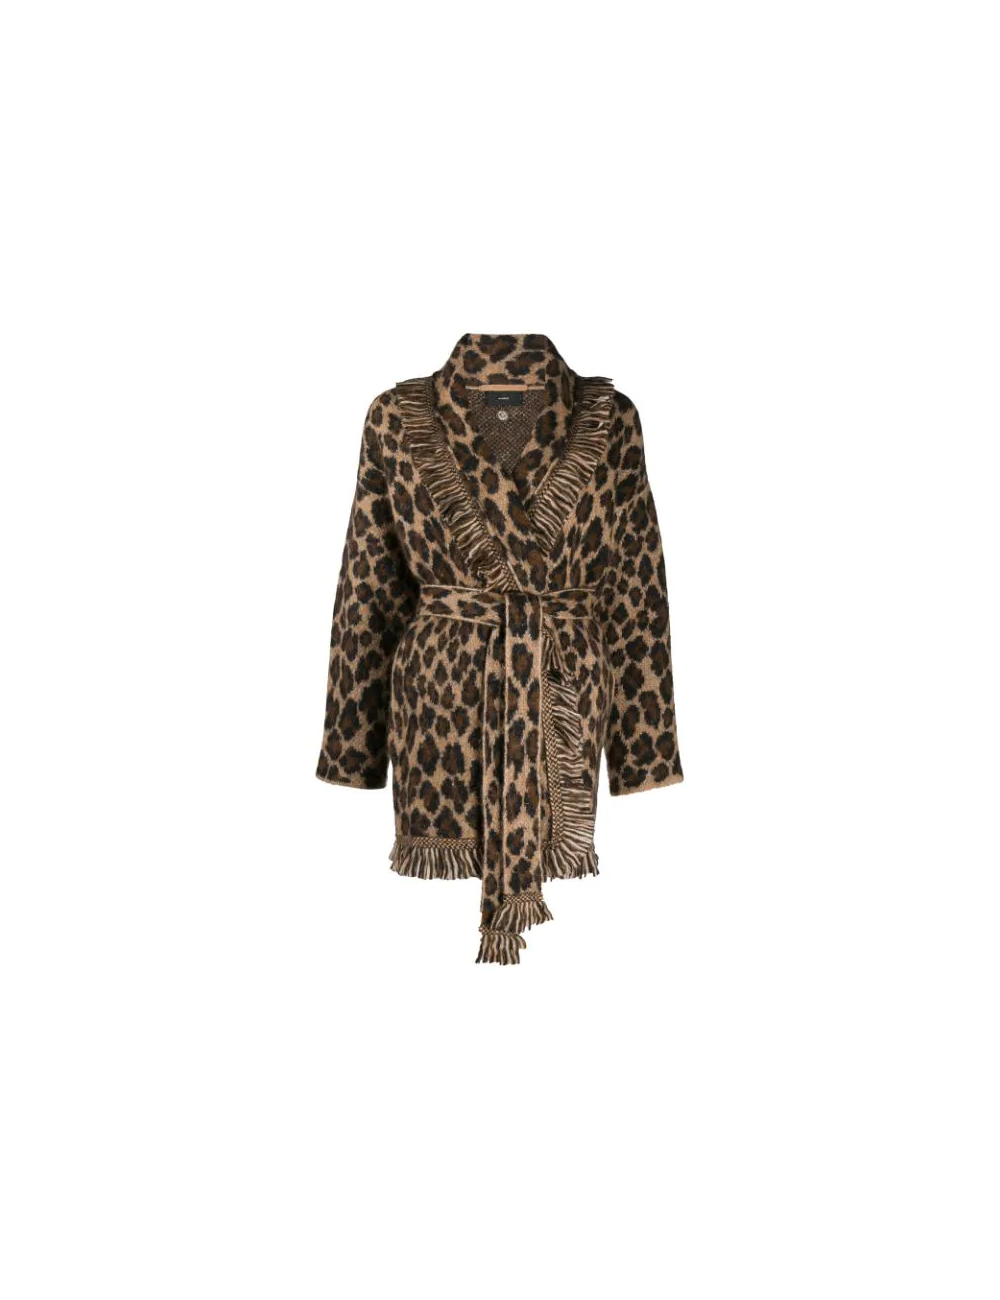 Leo printed cardigan Alanui - BIG BOSS MEGEVE